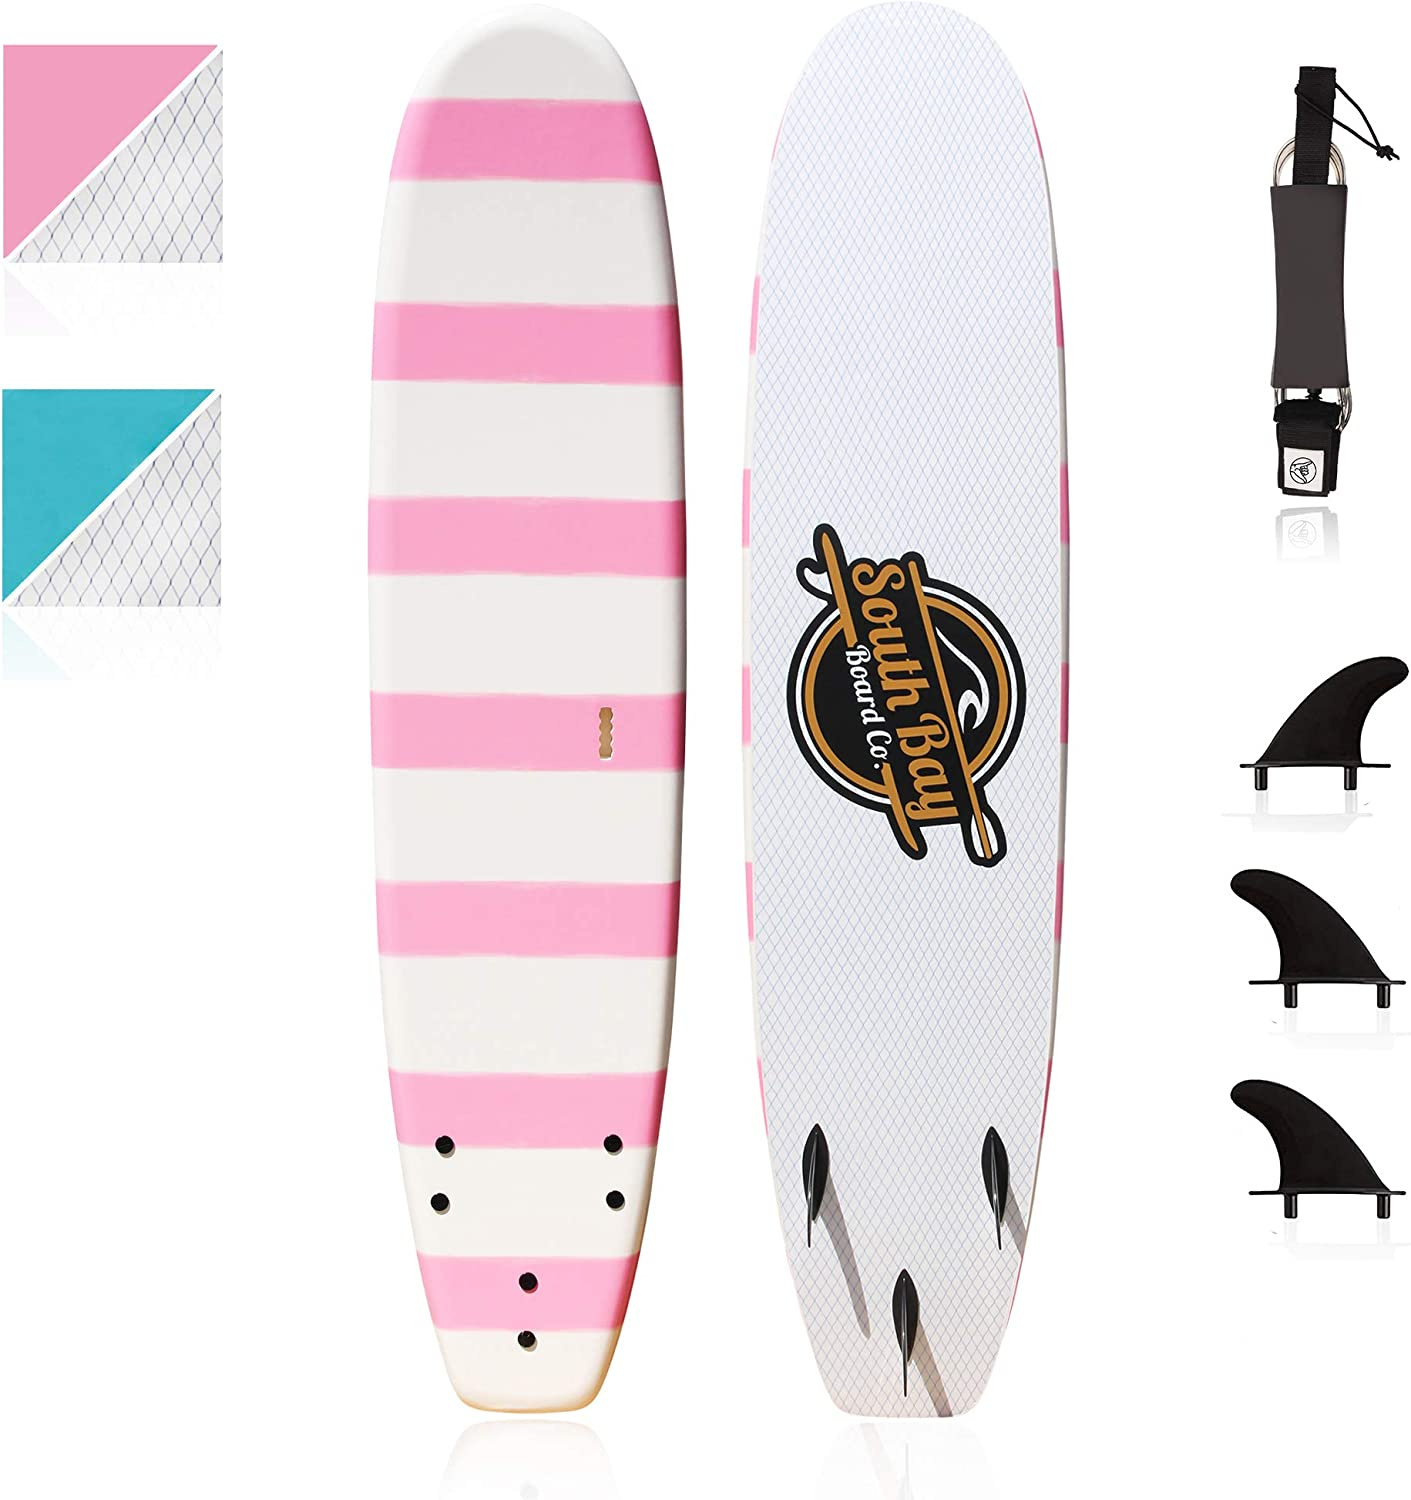 Beginner Surfboard (Soft Top Foam) for Kids, Teenagers & Lightweight Adults-6' & 8' Guppy-with 3 Rounded-Edge Soft-Top Surfboard Fins (Thruster Set)